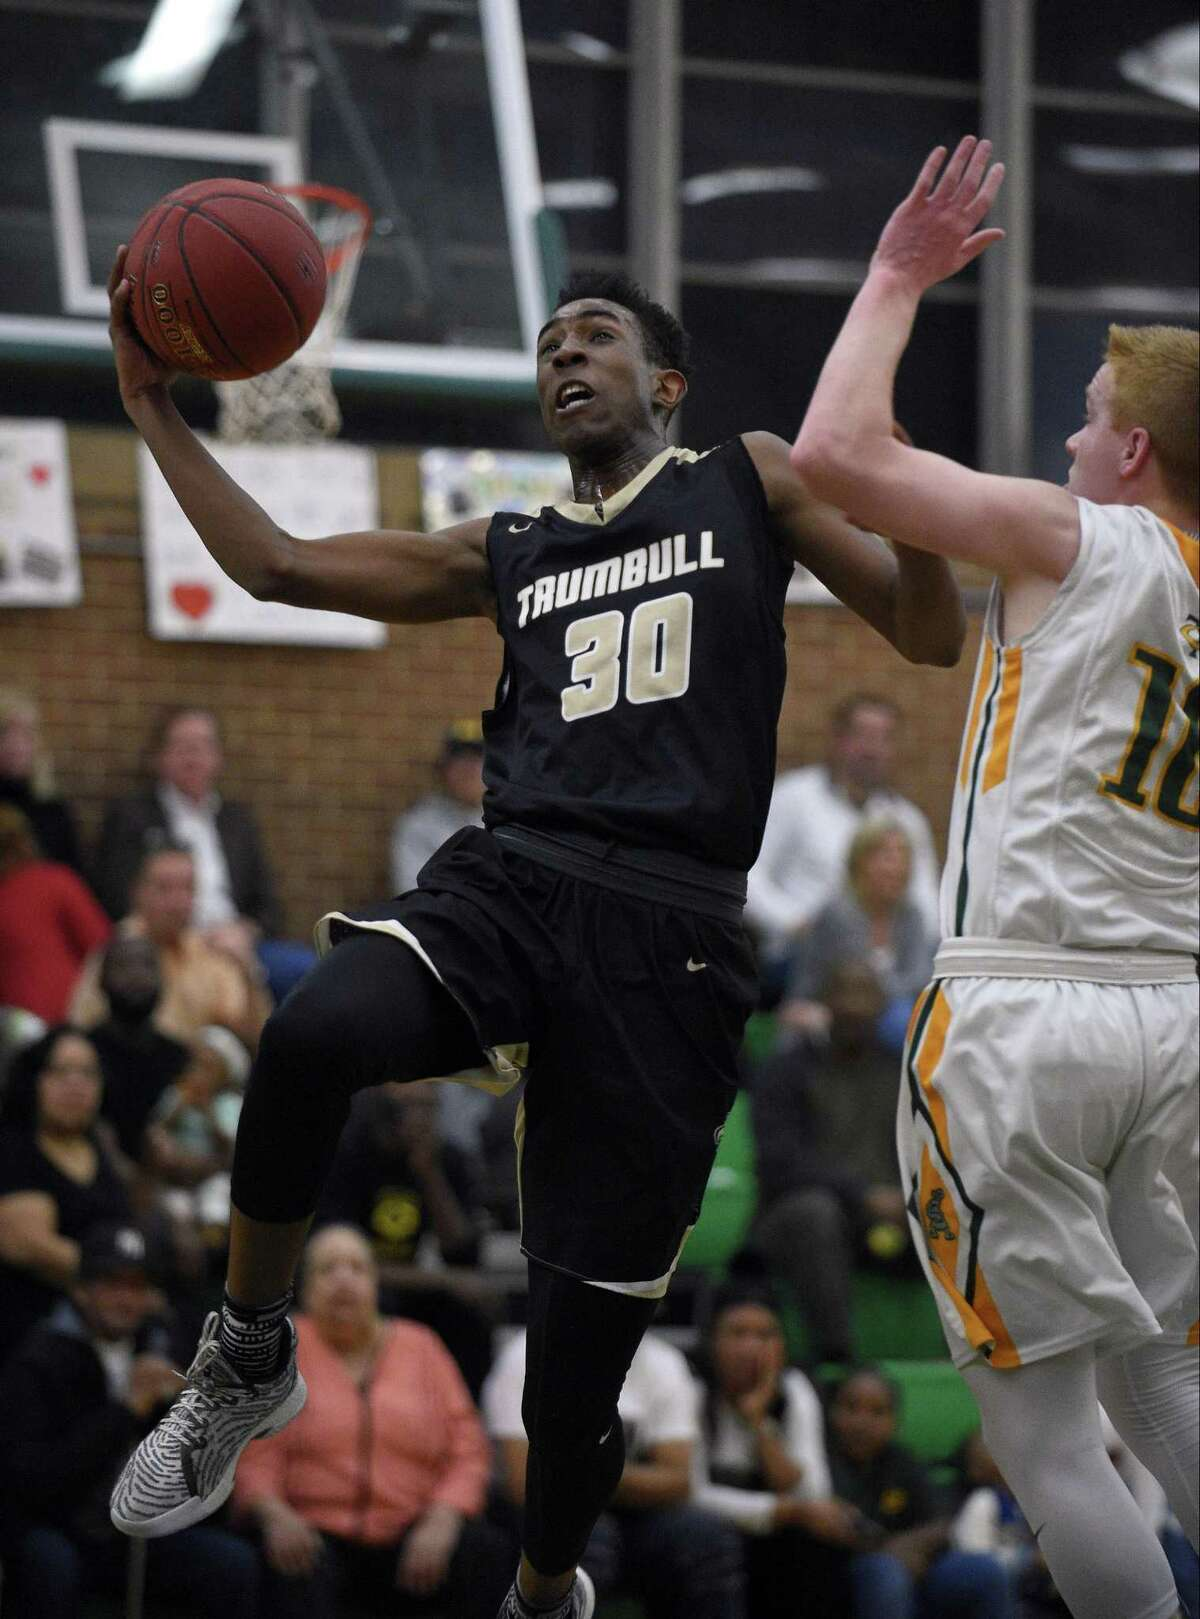 Trumbull Timmond Williams (30) puts up a shot against Trinty Catholic's Jack Soucy (10) during an FCIAC Boys Basketball game at Trinity Catholic High School on Wednesday, Feb. 14, 2018 in Stamford, Connecticut.